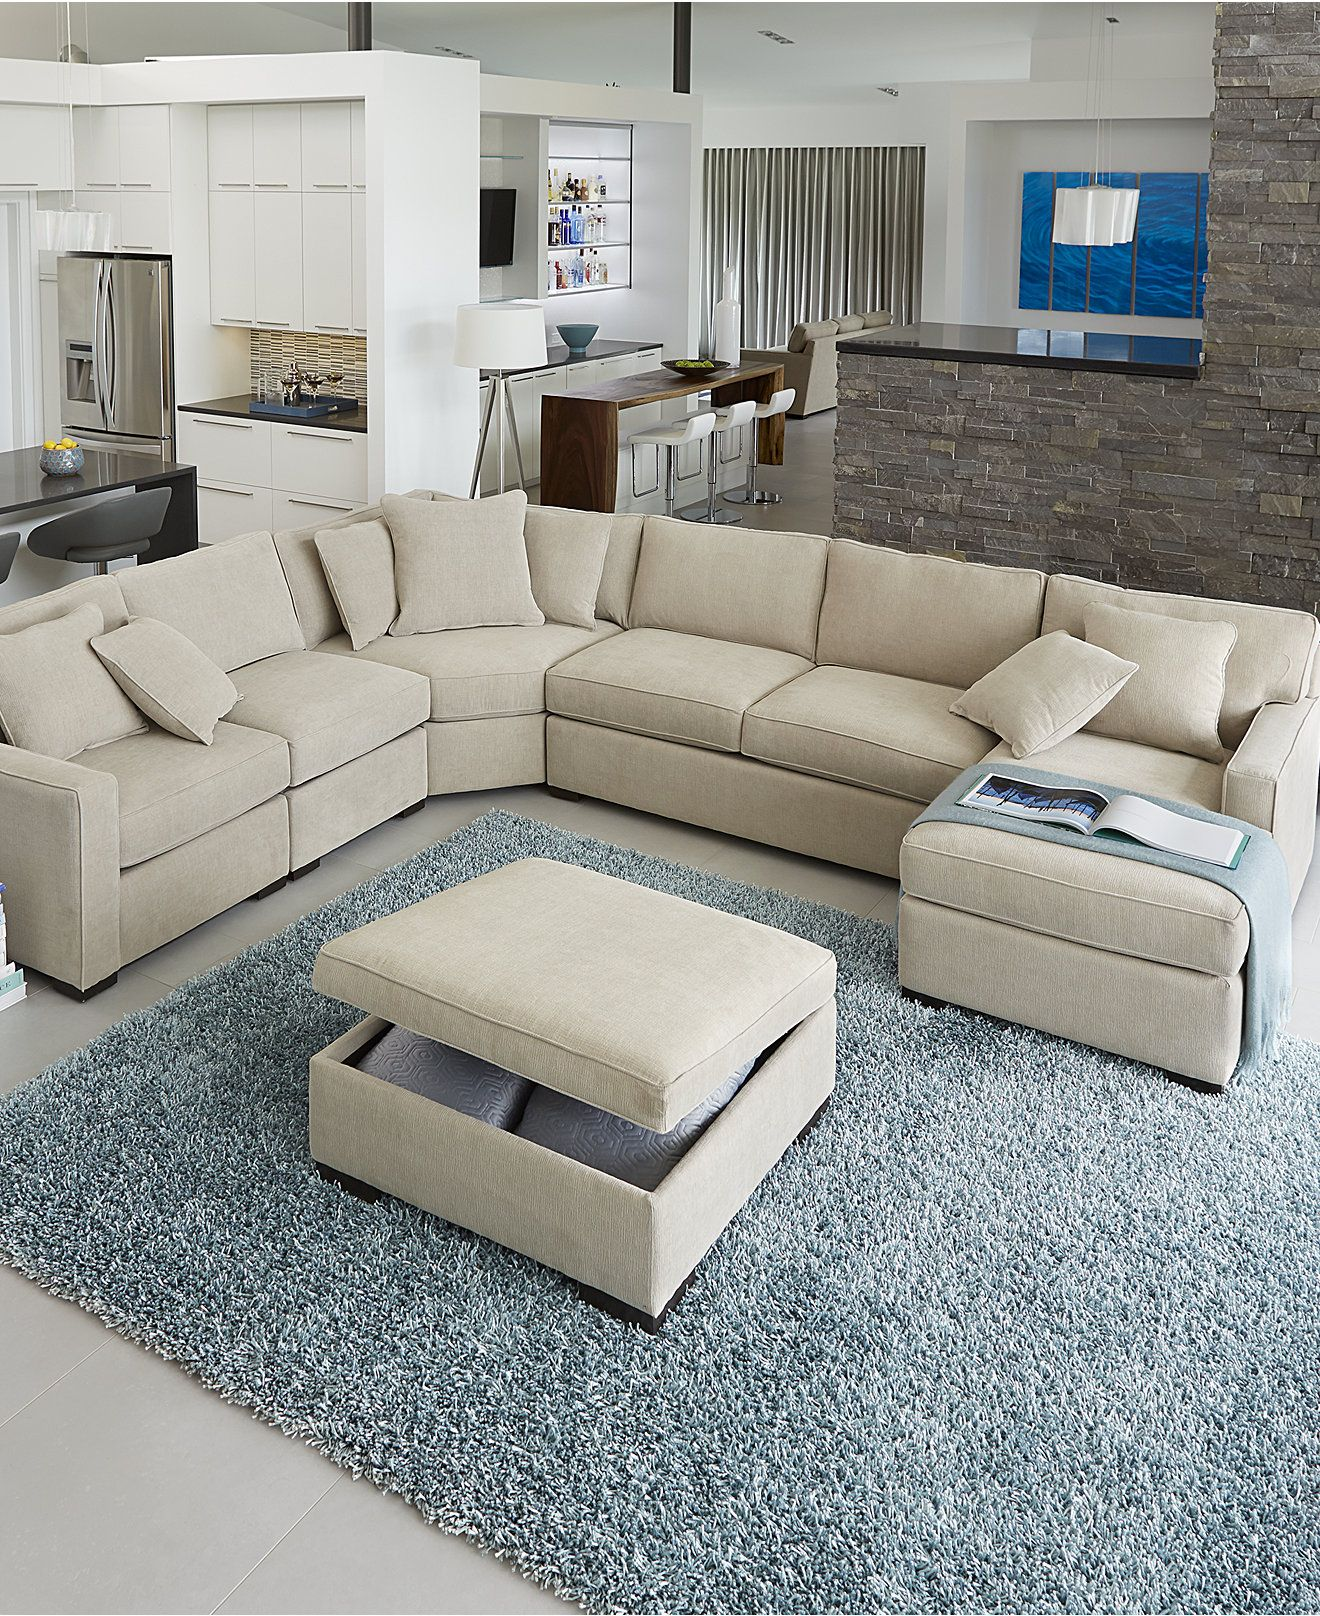 room fresh without sofa furniture s macy lovely of set macys living modern decorate